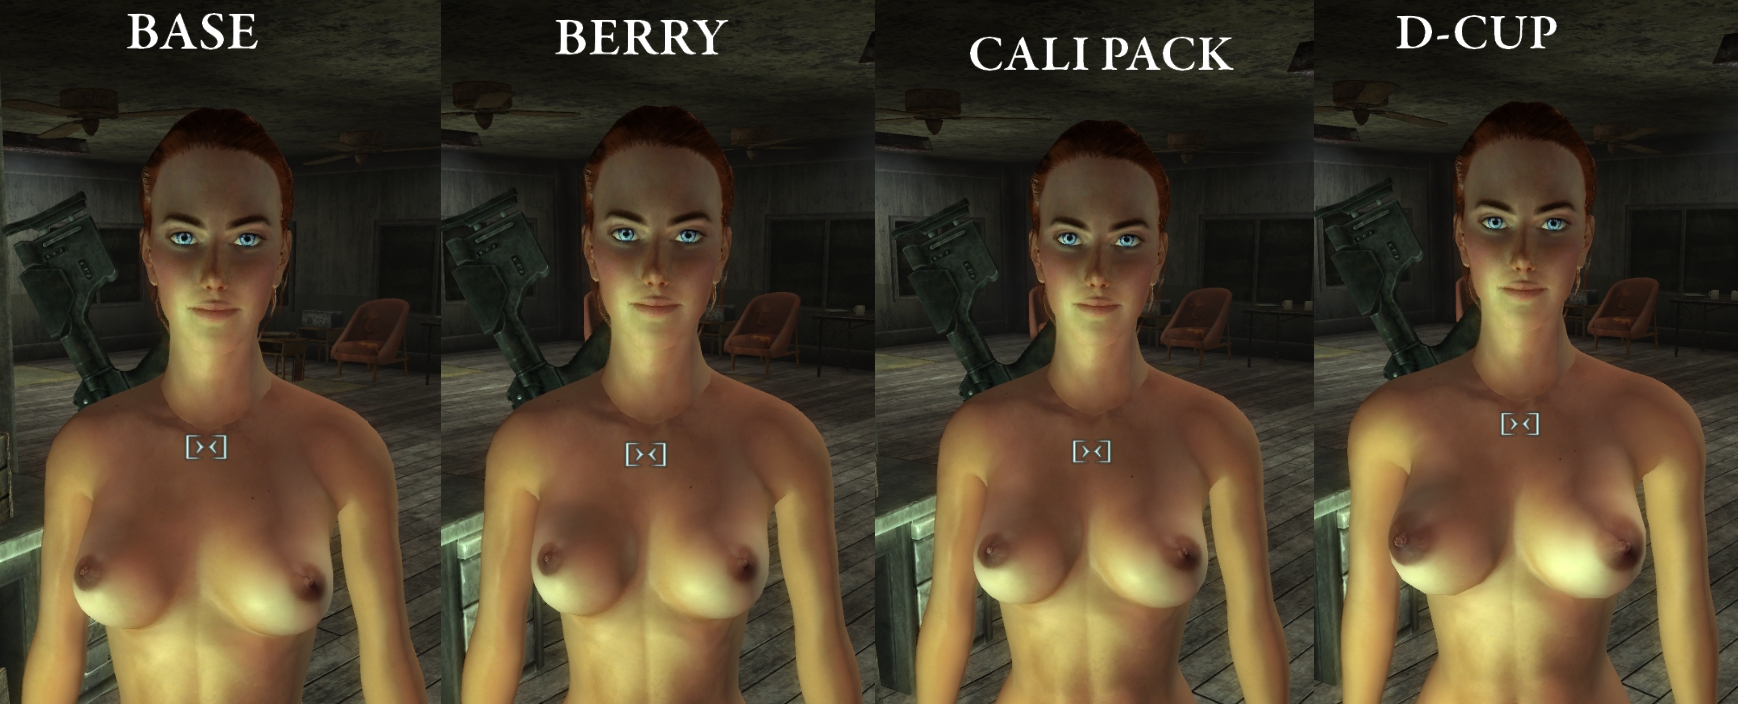 Fallout 4 naked chicks porn women